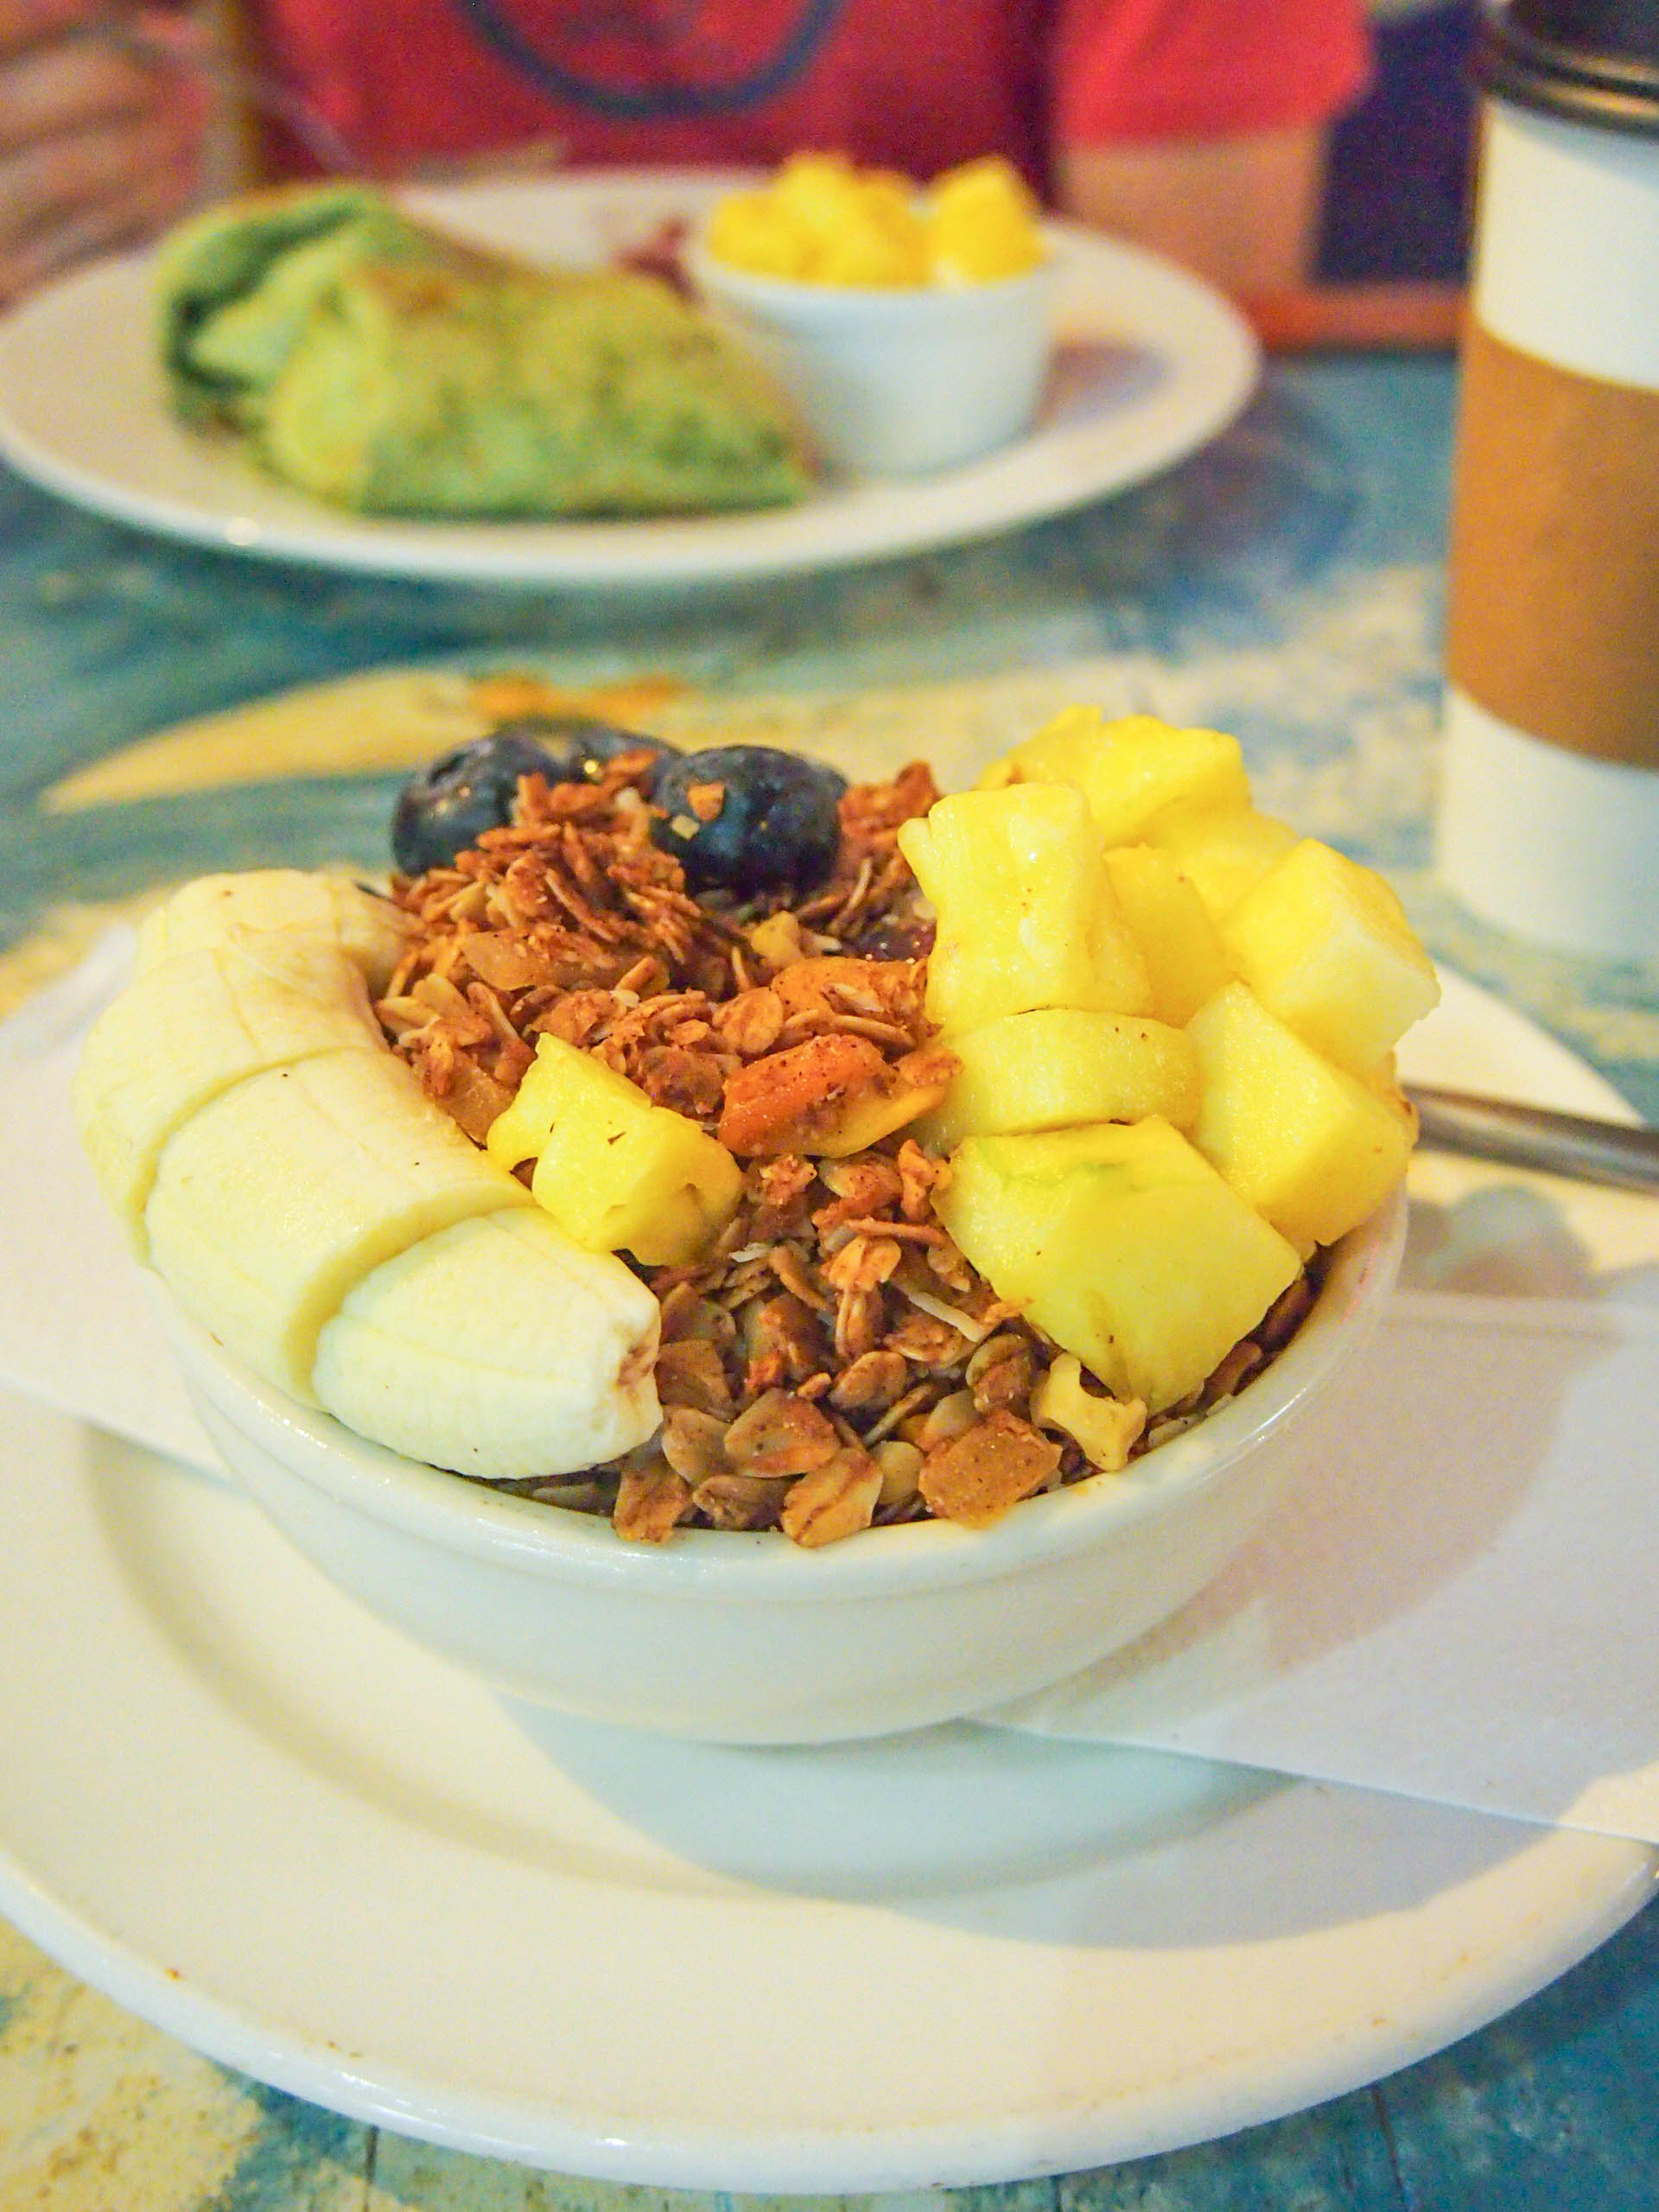 Acai bowl from Java Kai on Kauai